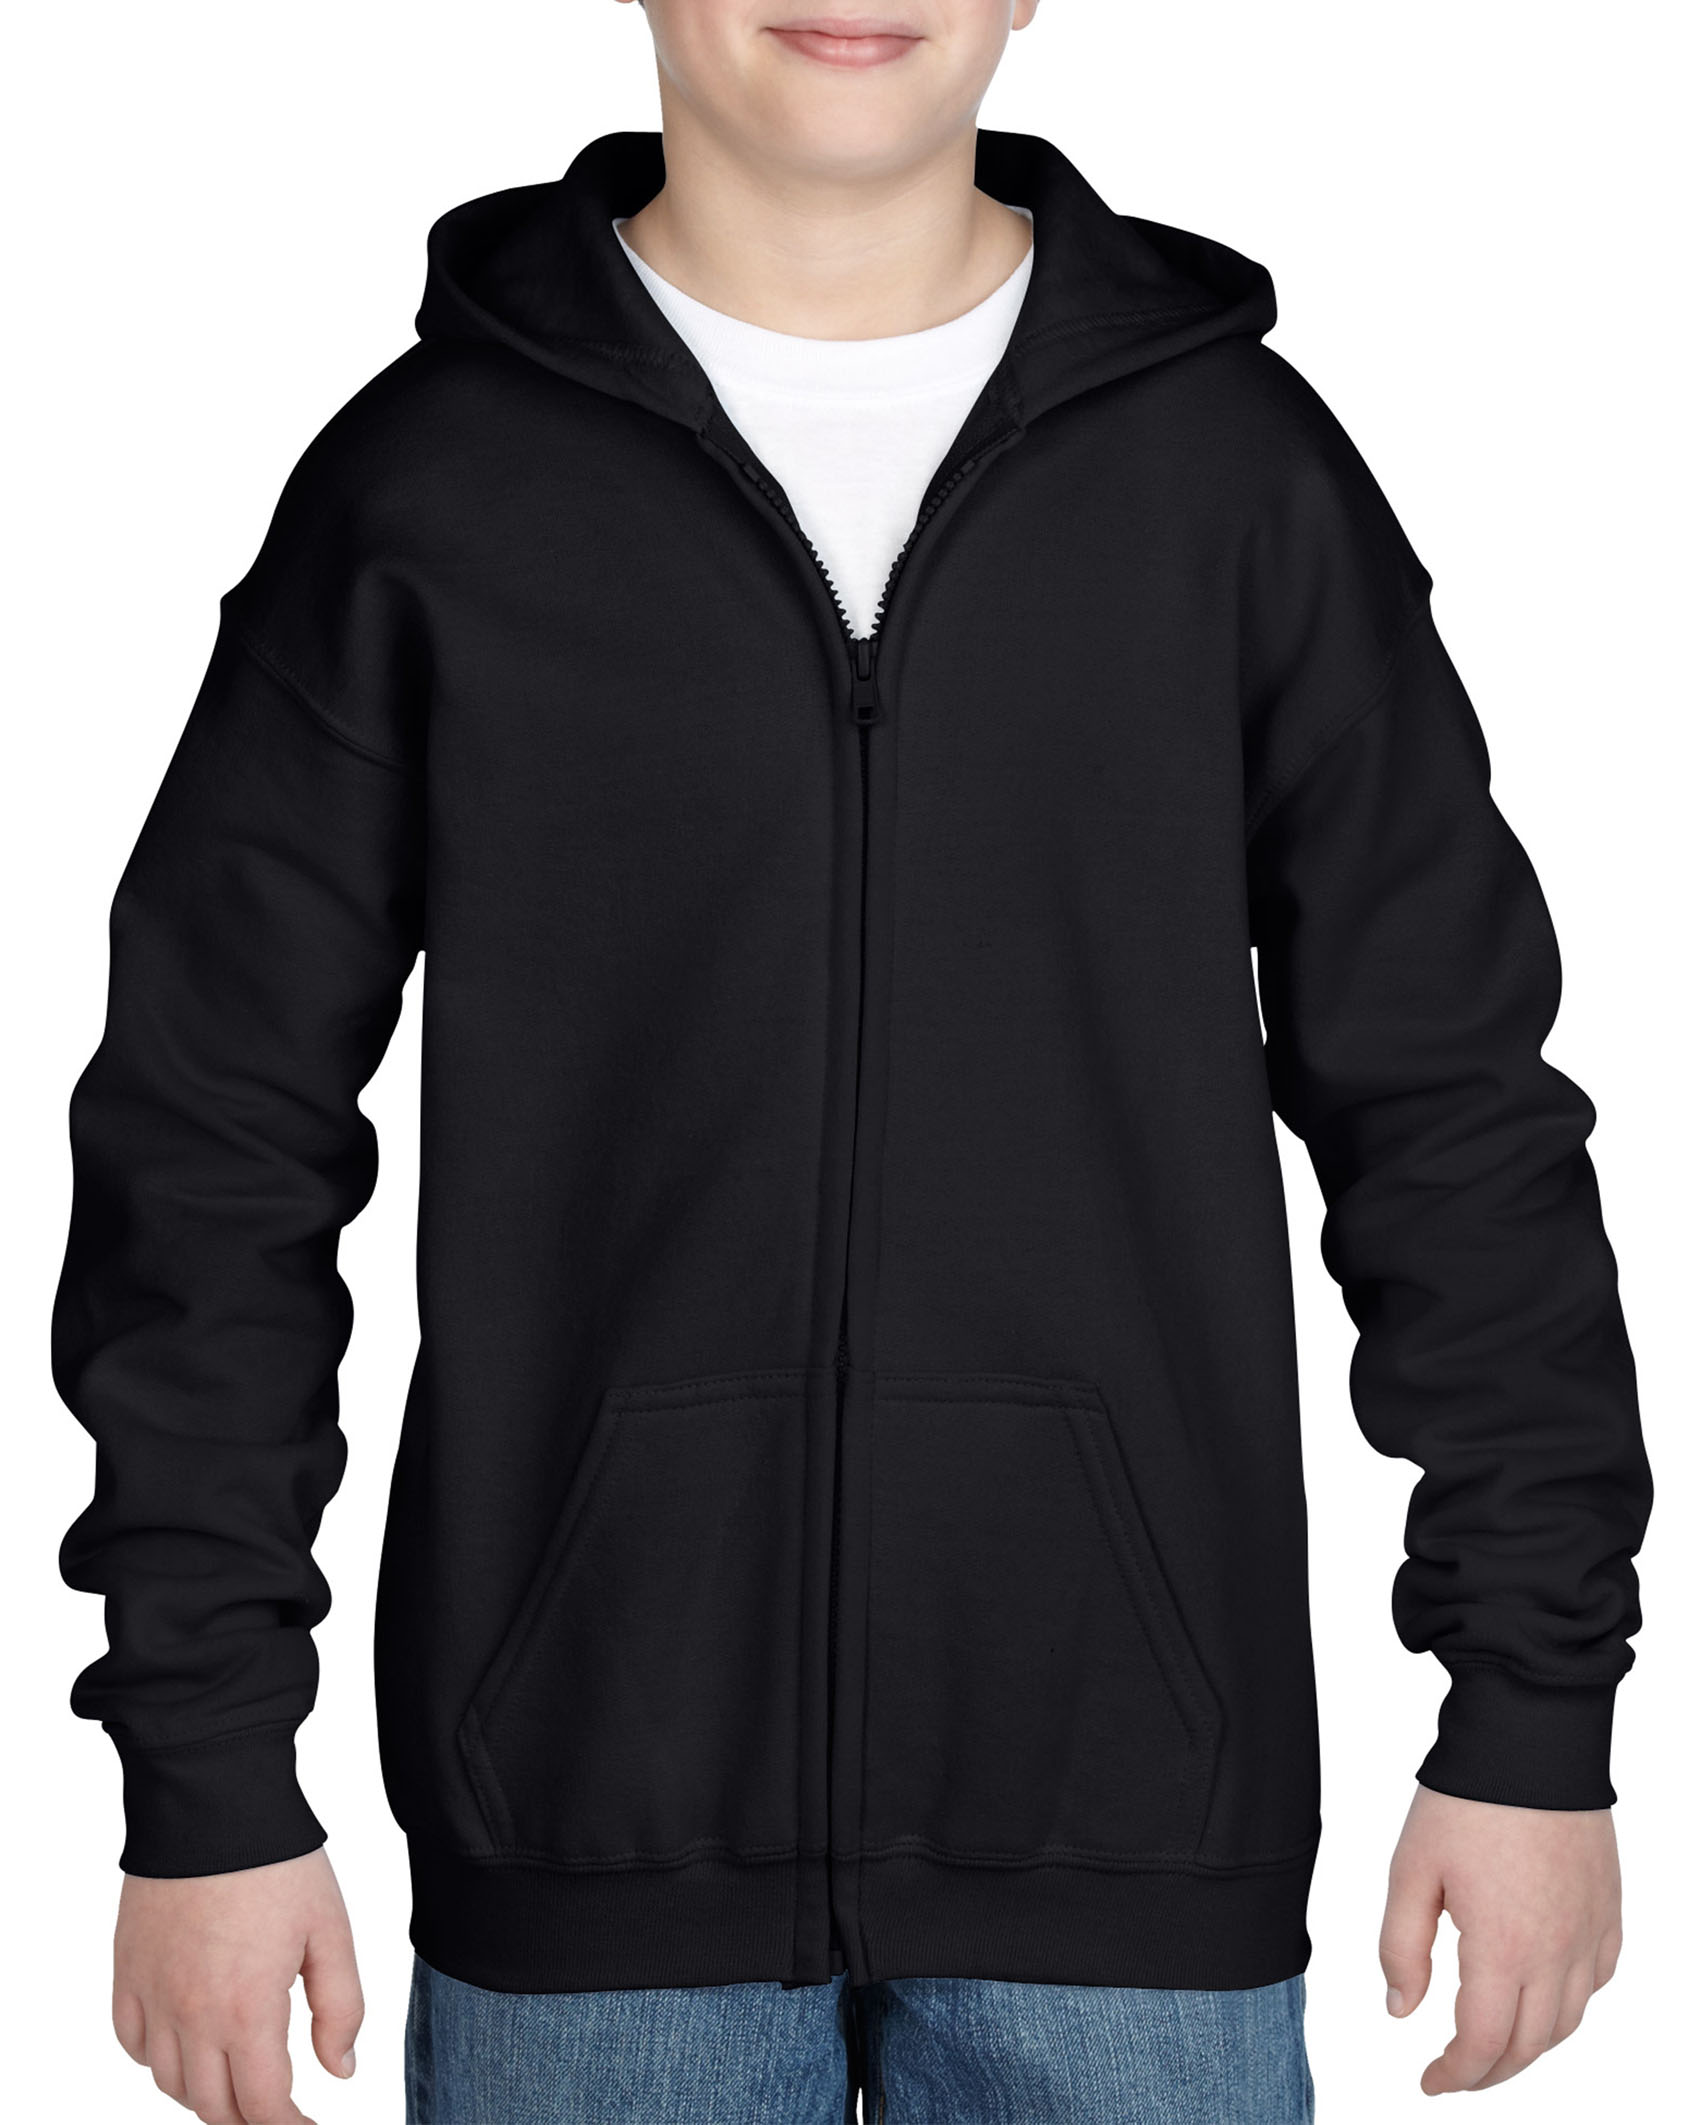 Gildan Sweater Hooded Full Zip HeavyBlend for kids